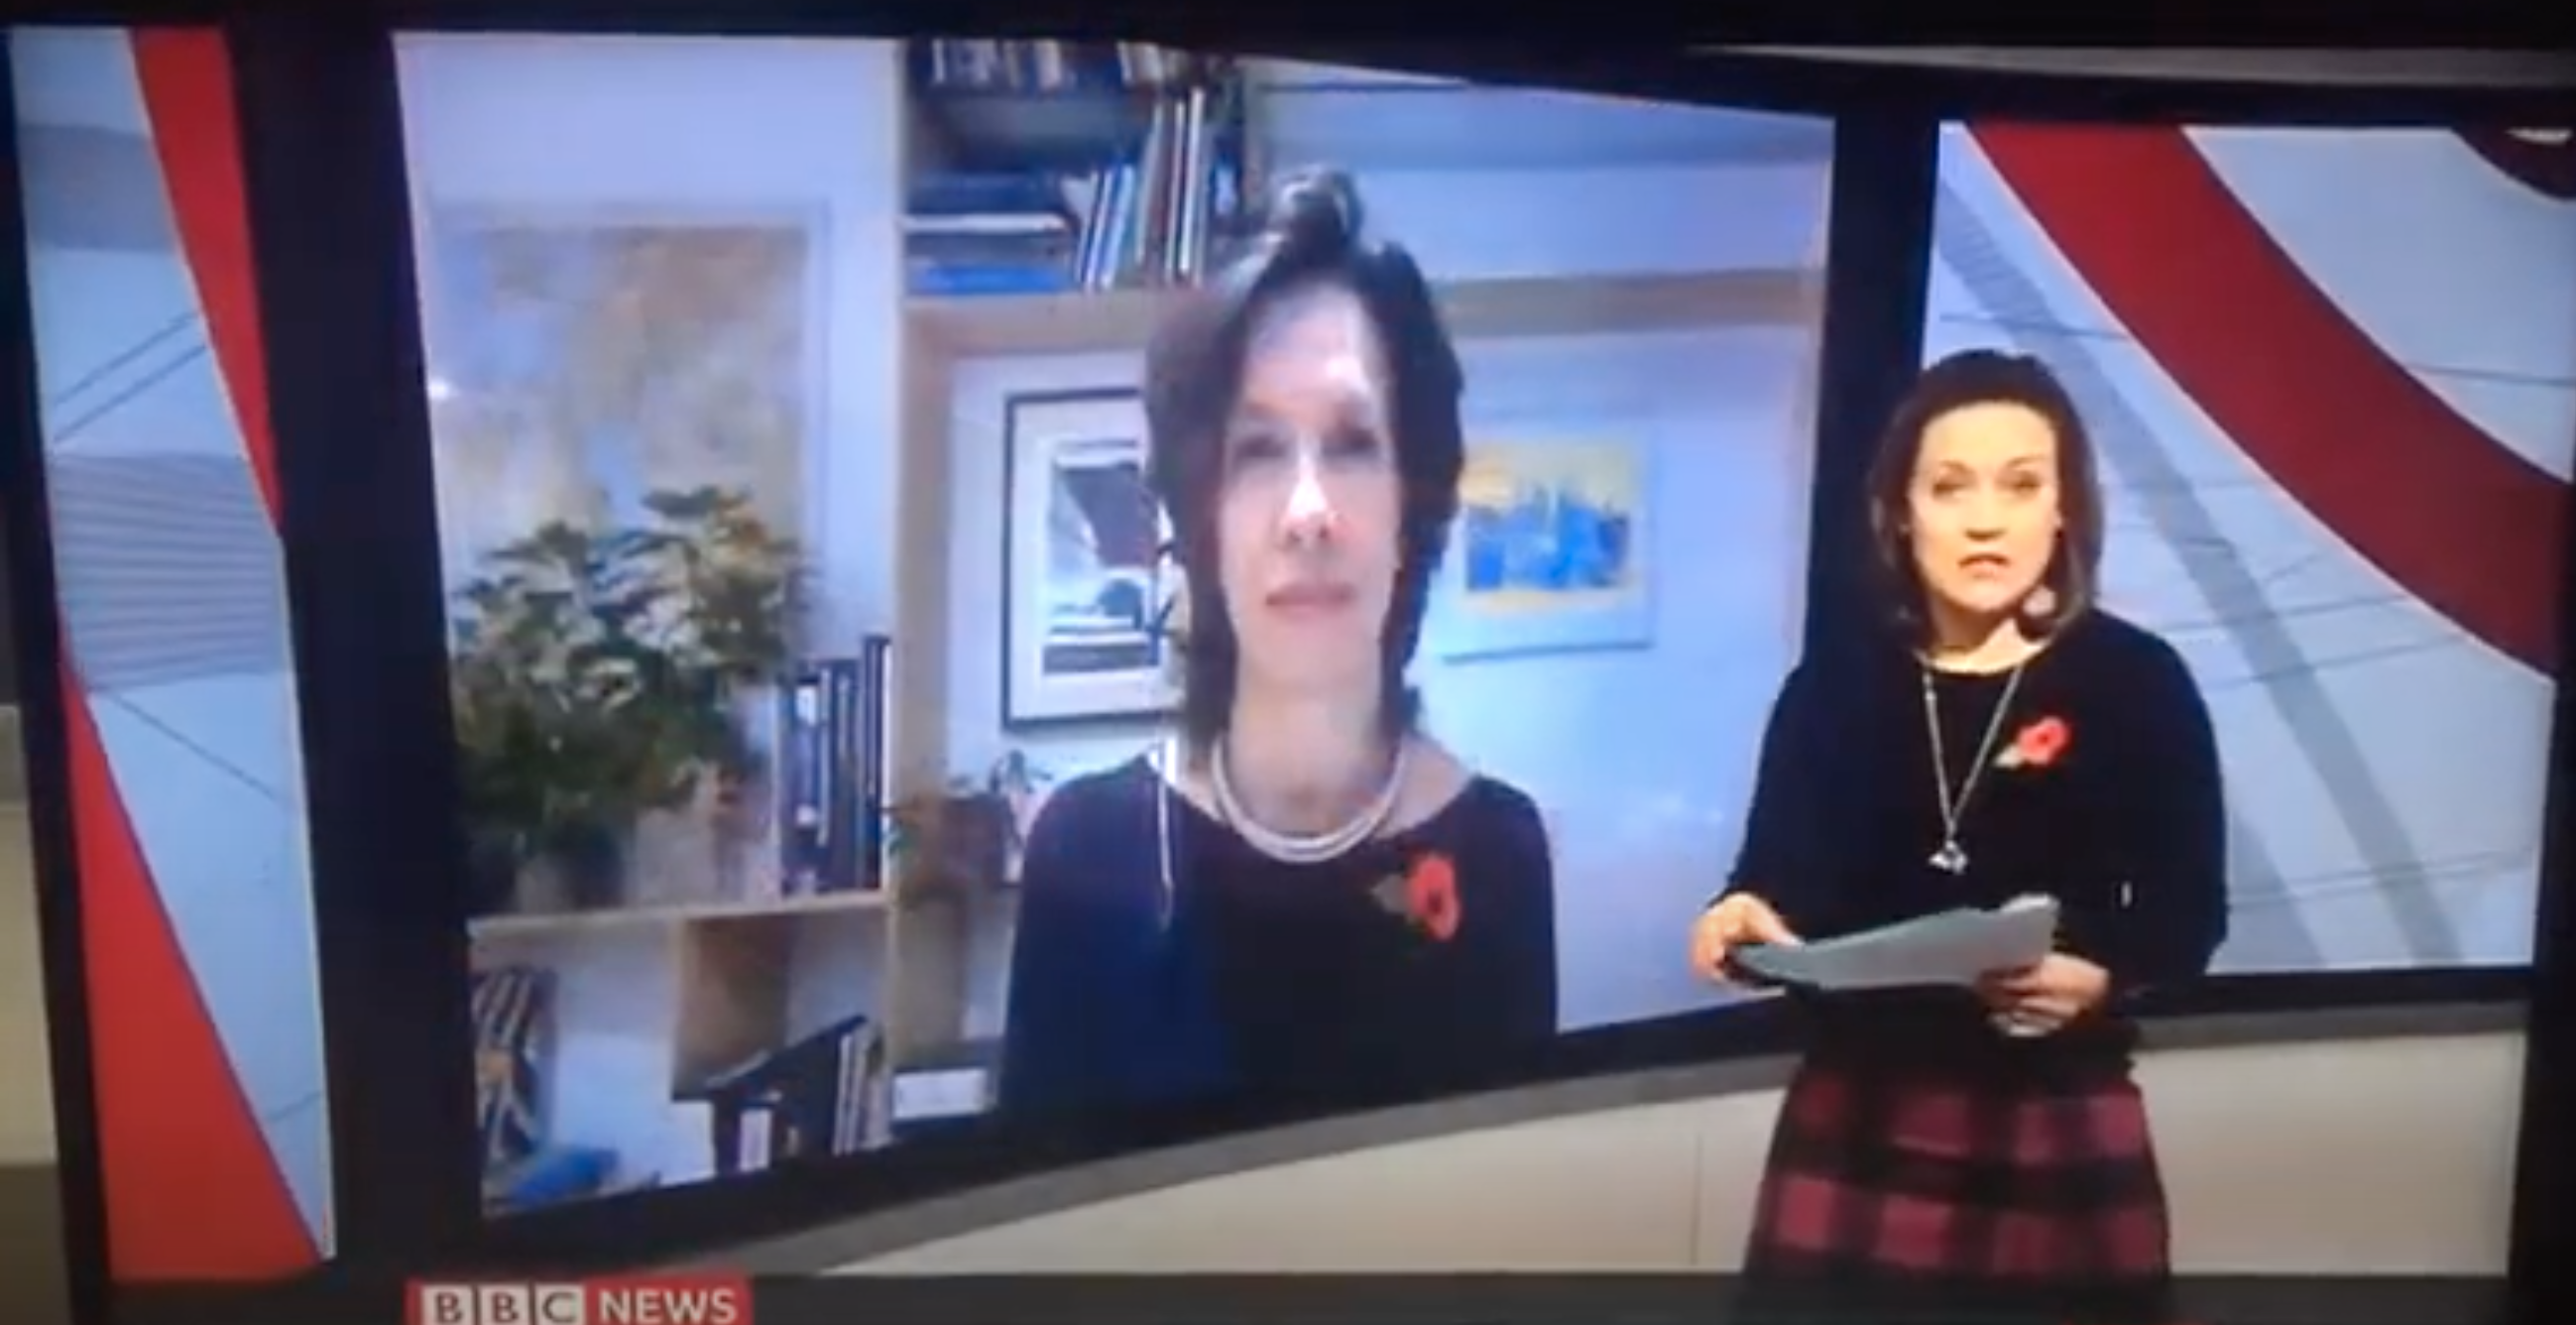 Above: Amanda Fergusson, ceo of GCA speaking on BBC News about the industry's plight